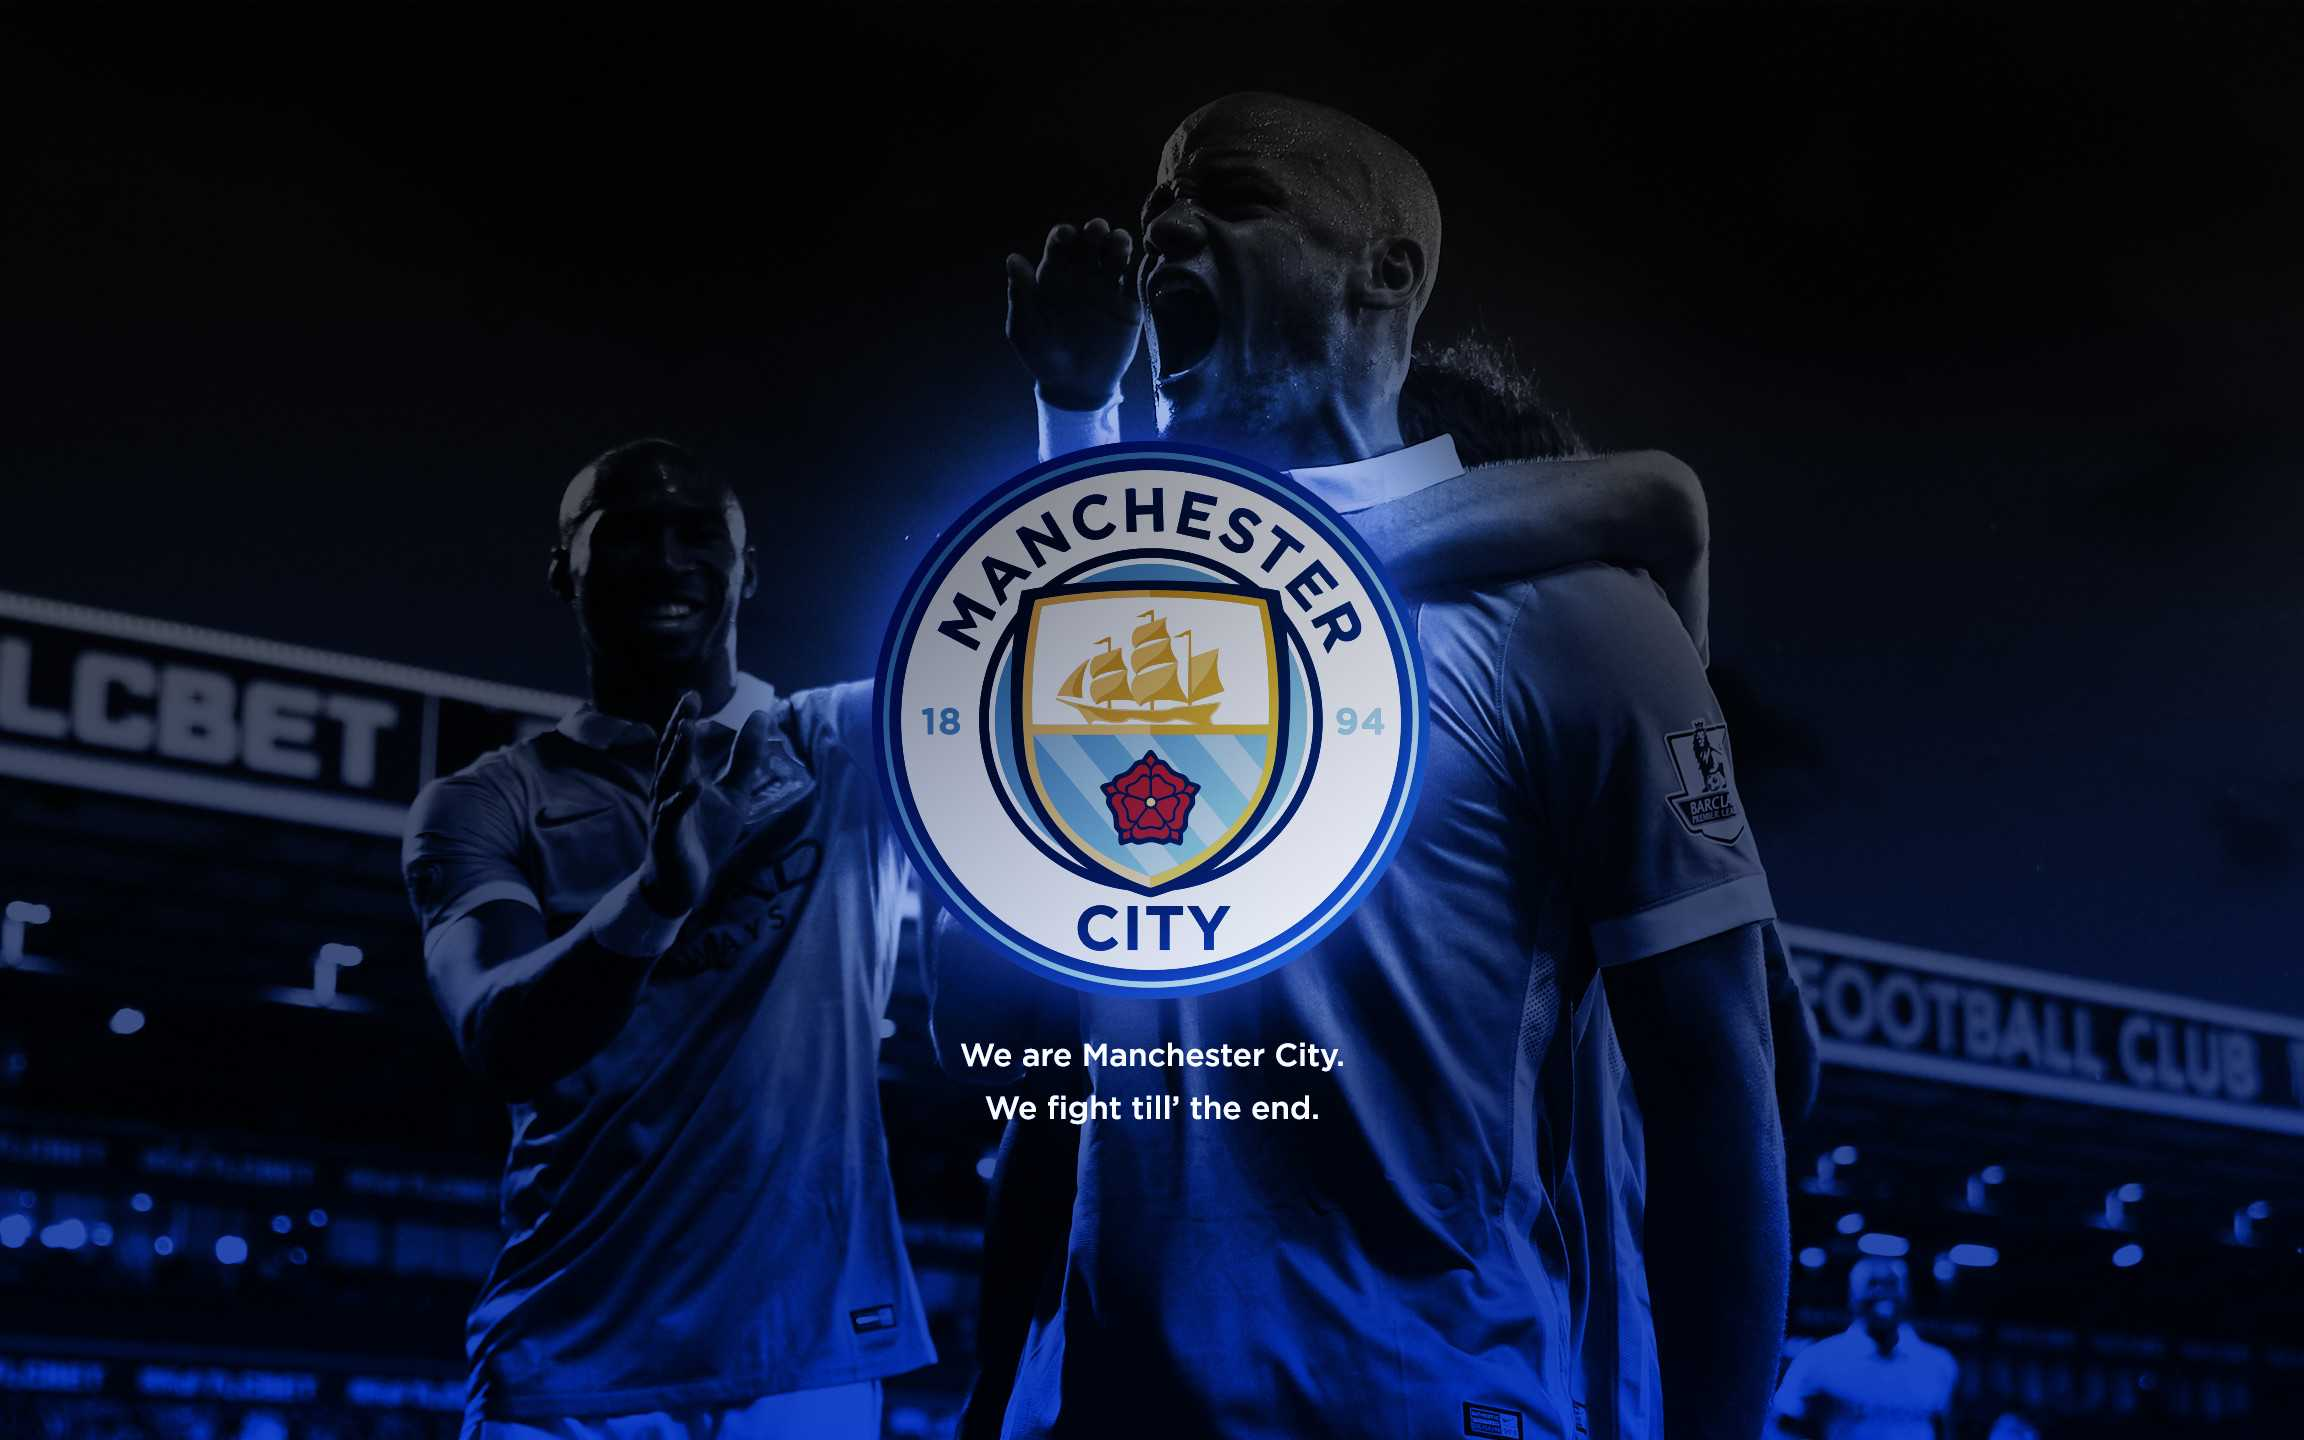 Manchester City 2018 Wallpapers